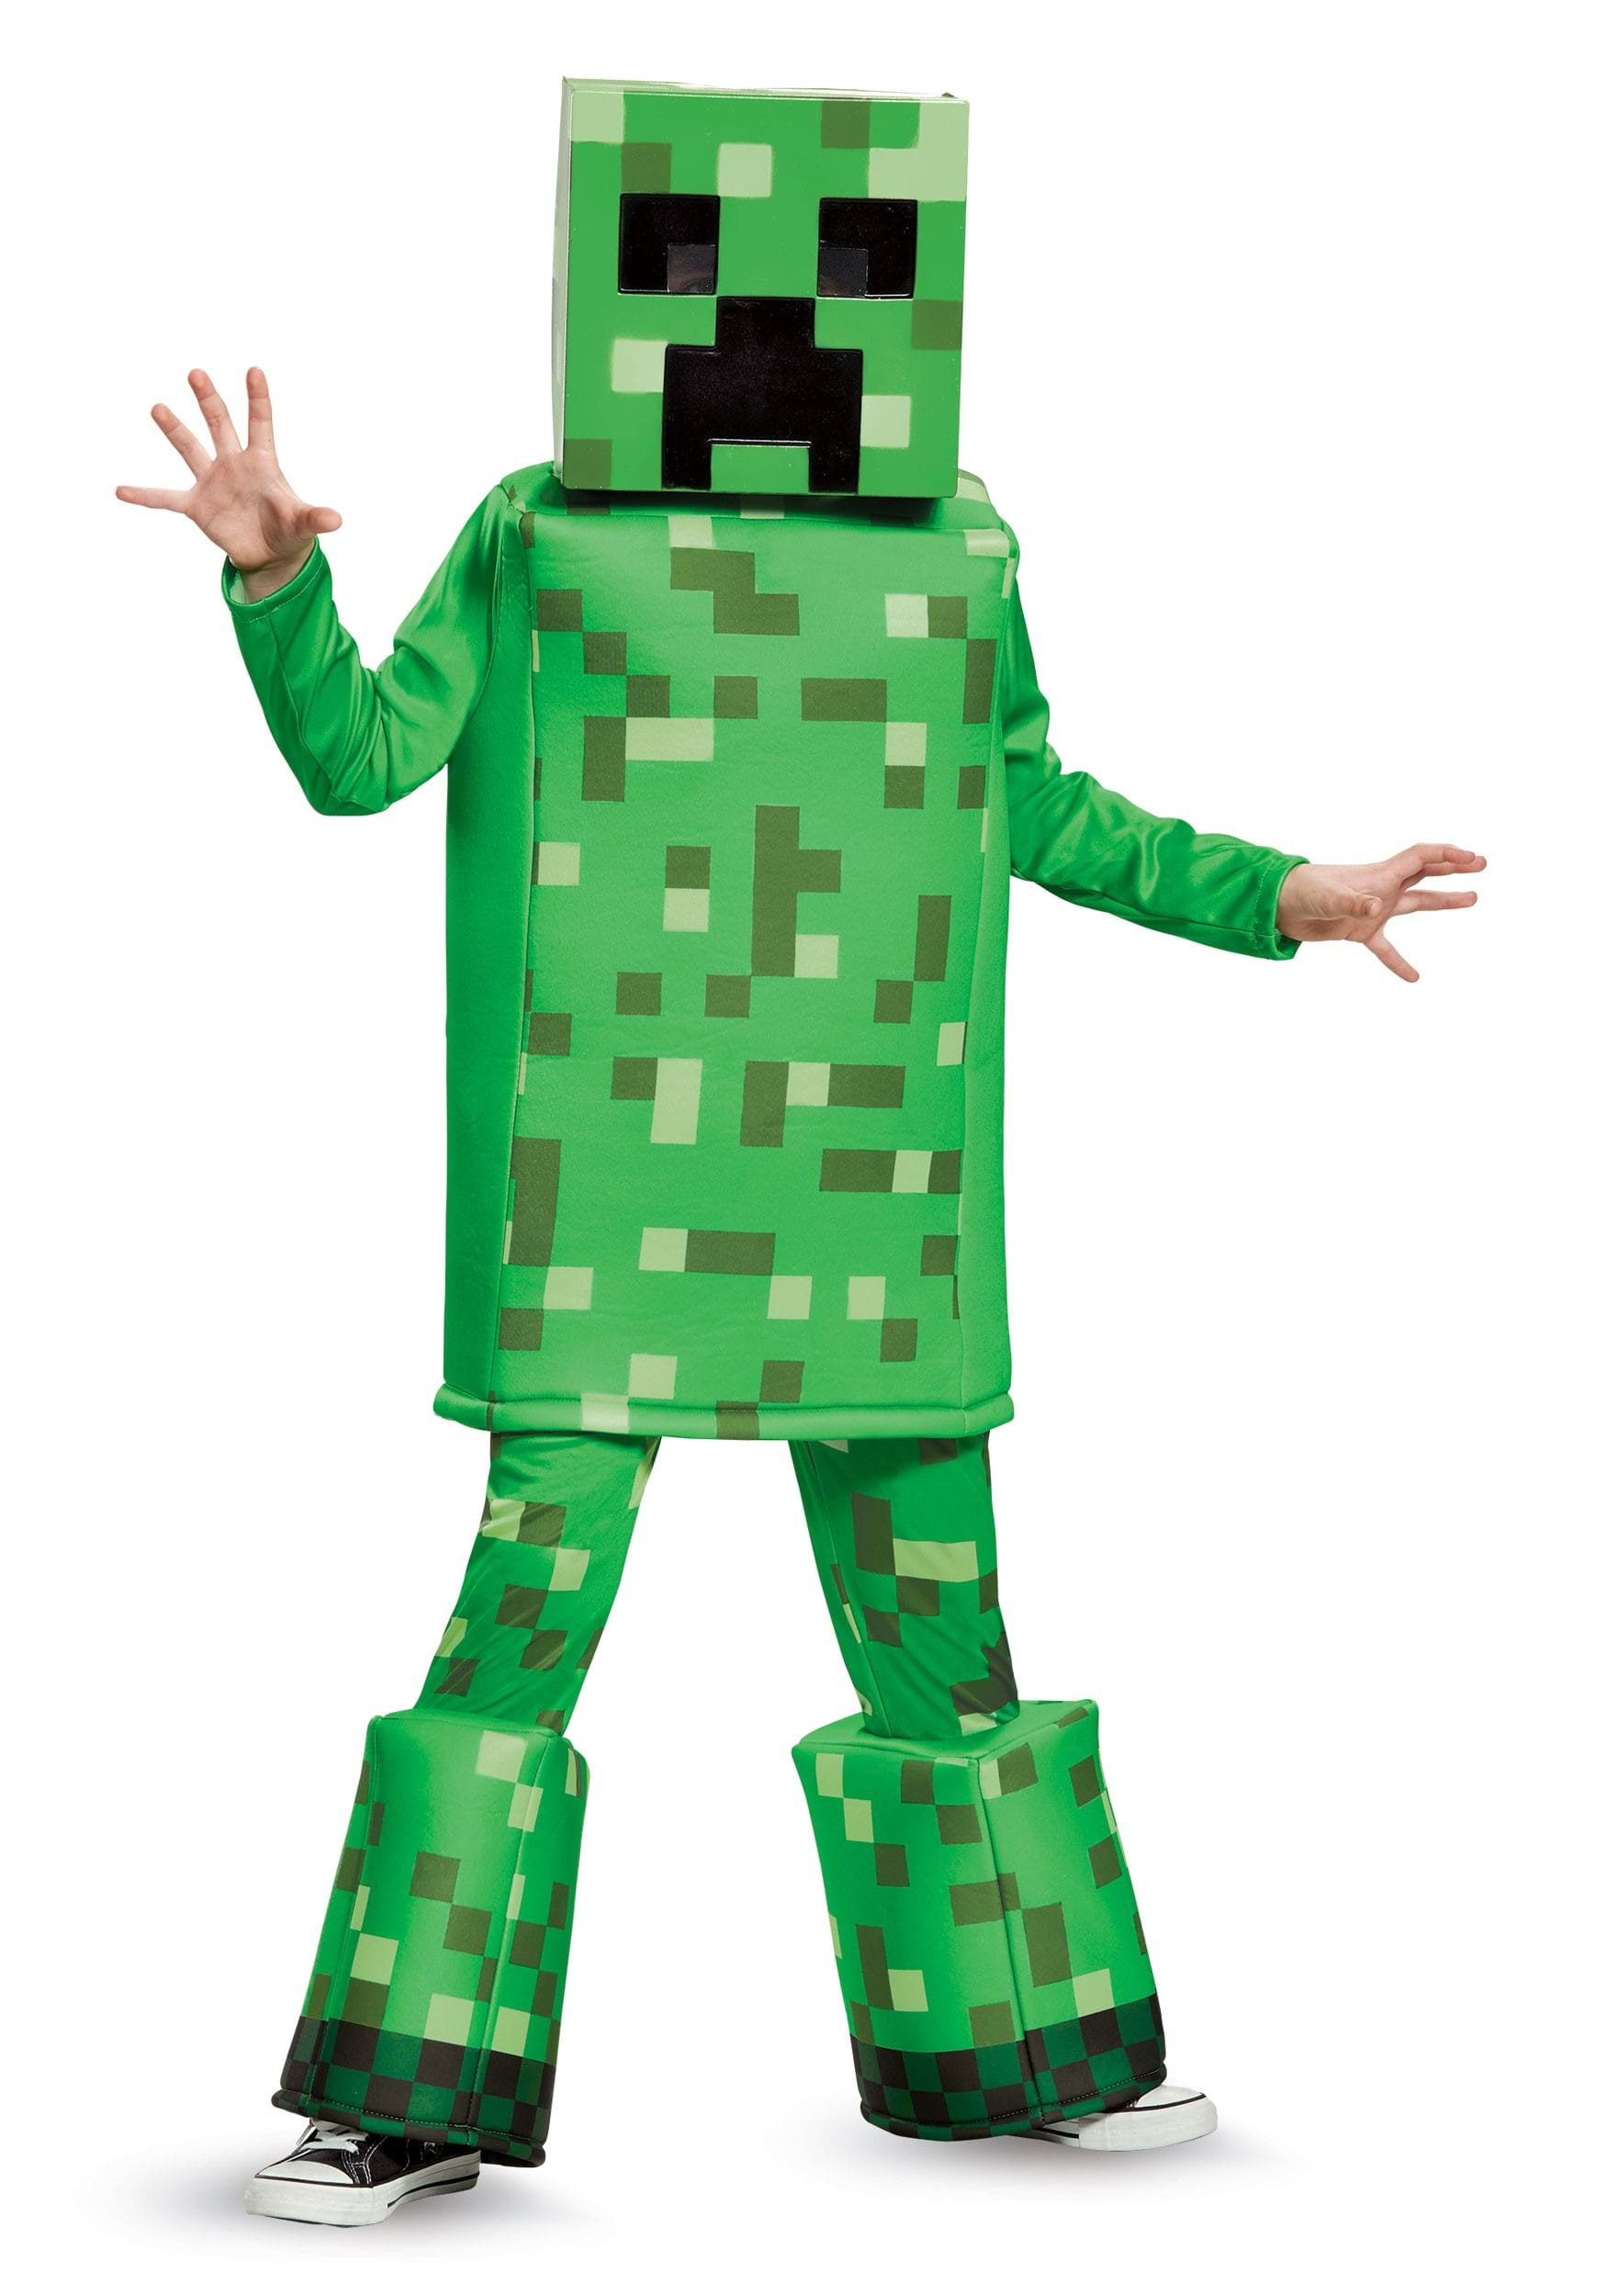 c66c695cba54 Minecraft Costumes   Accessories - HalloweenCostumes.com